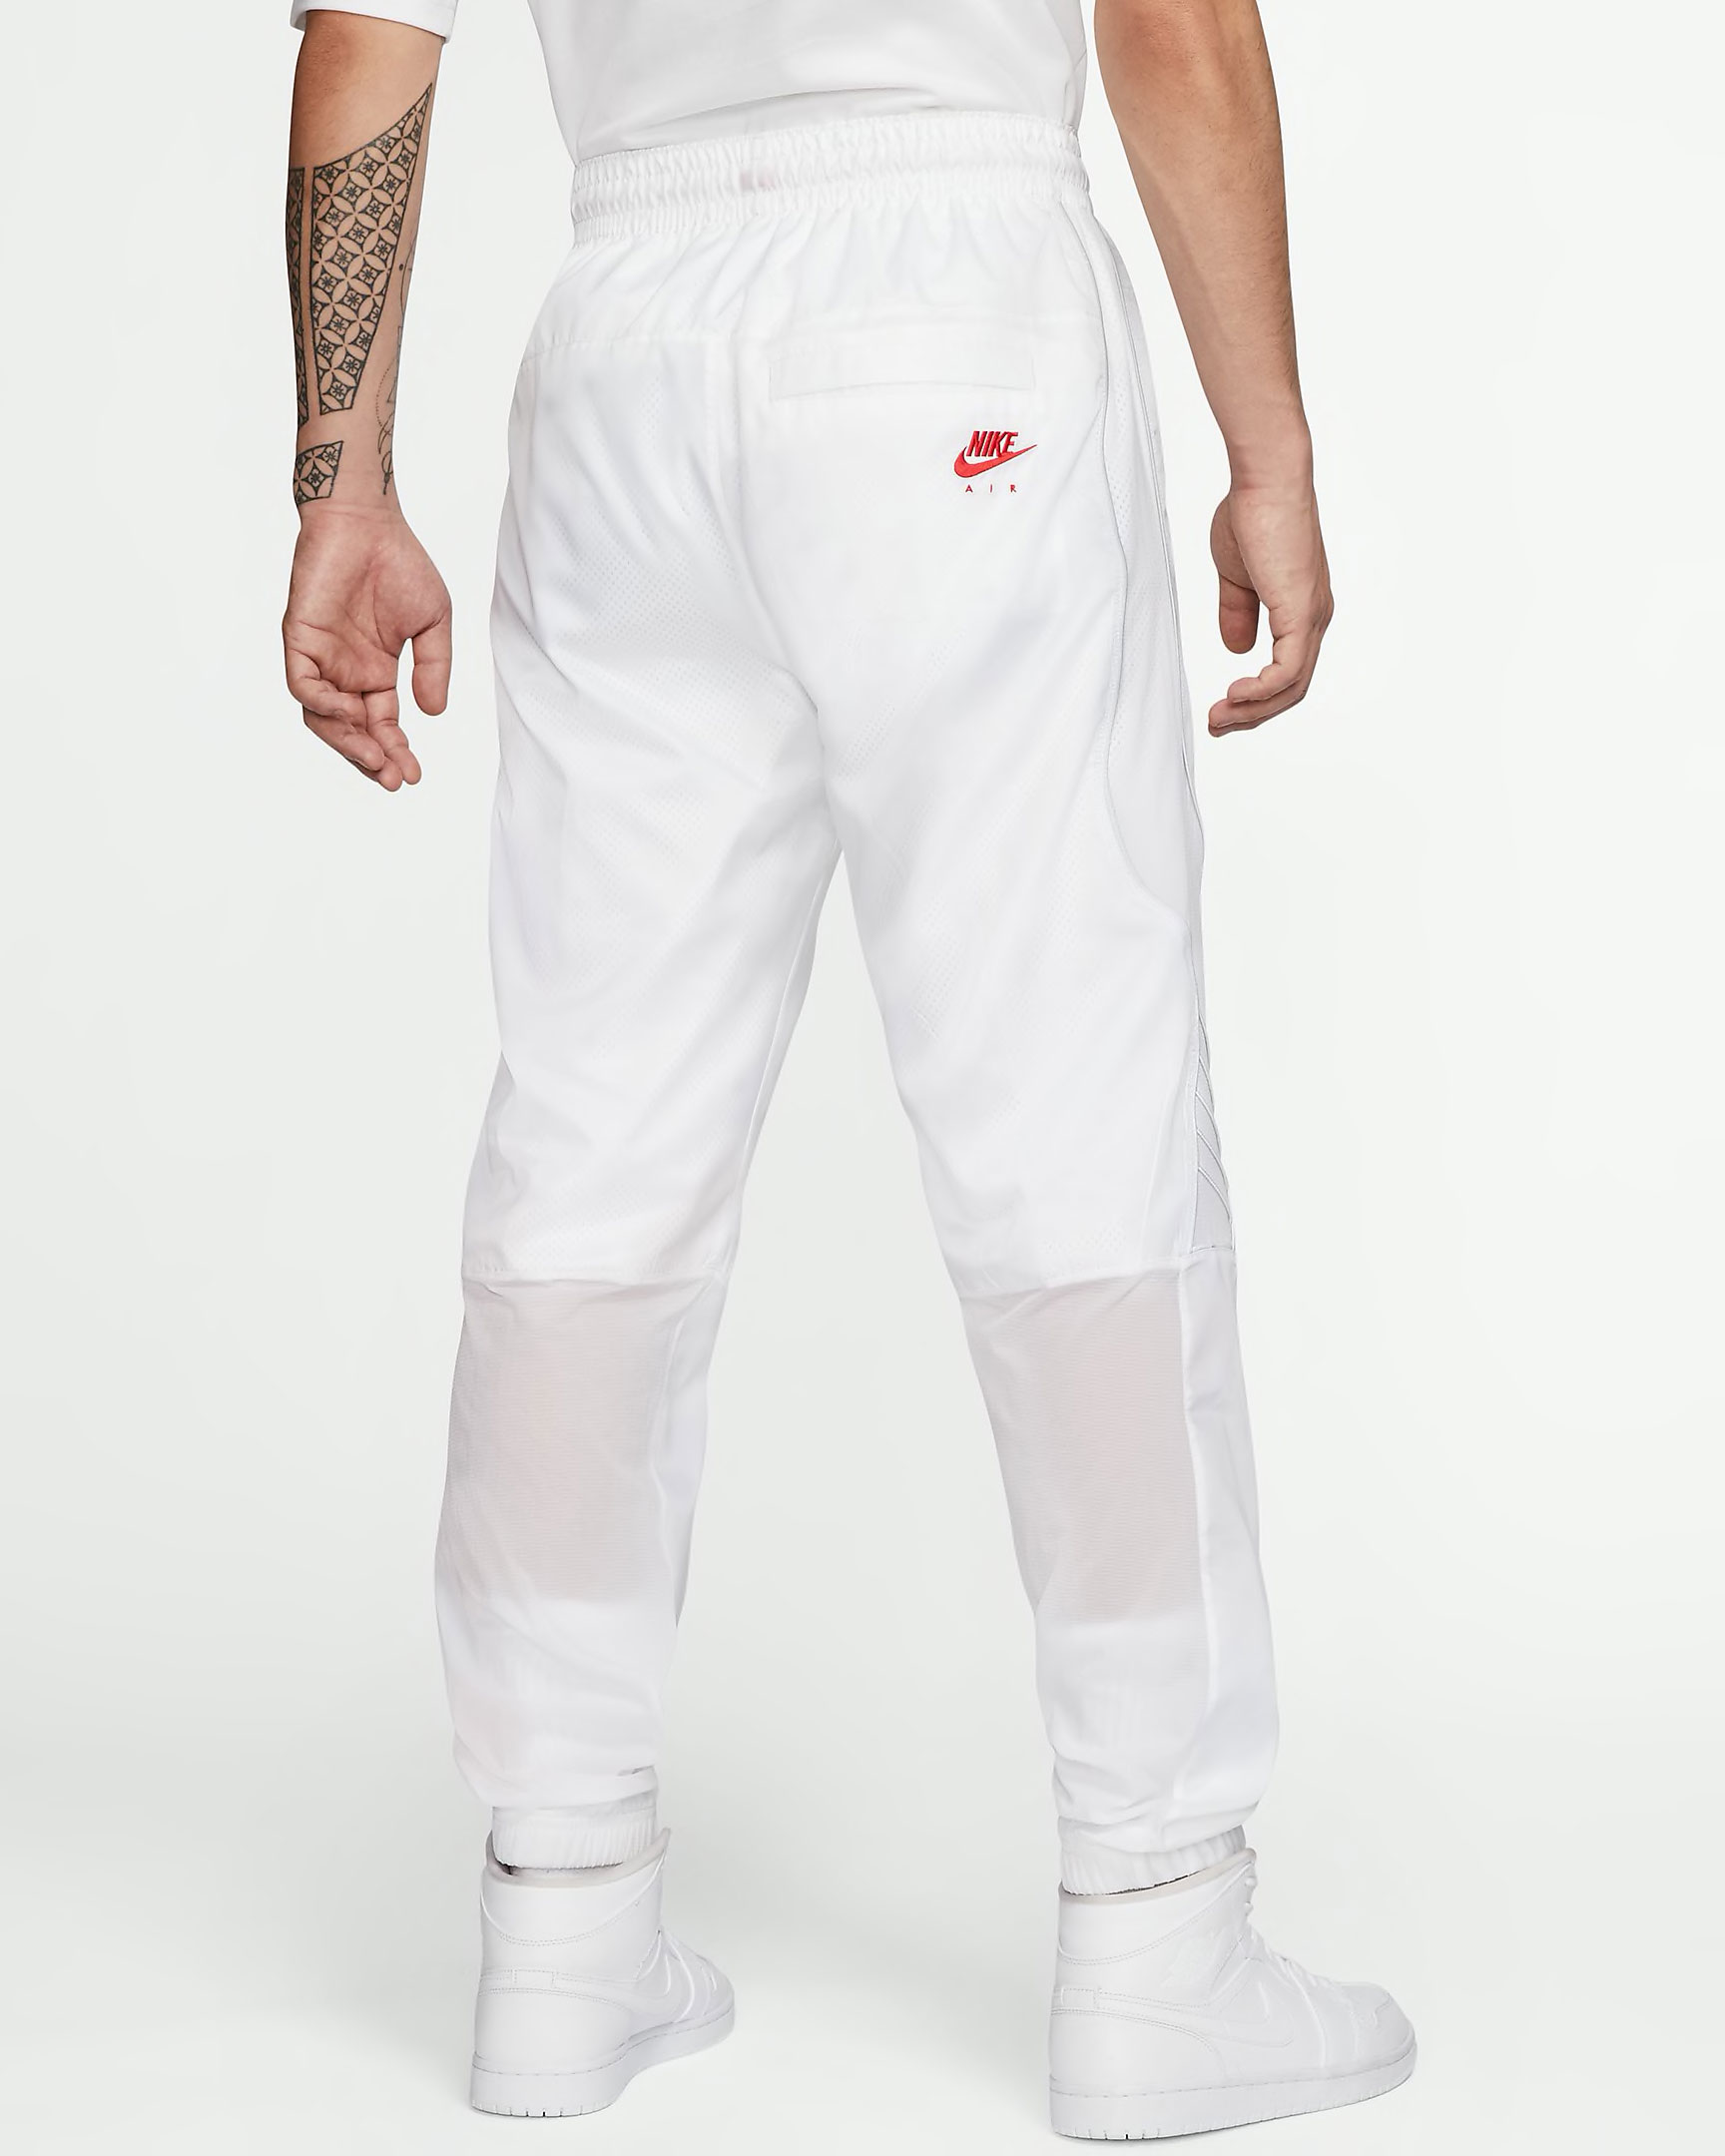 air-jordan-5-fire-red-2020-pants-white-red-2